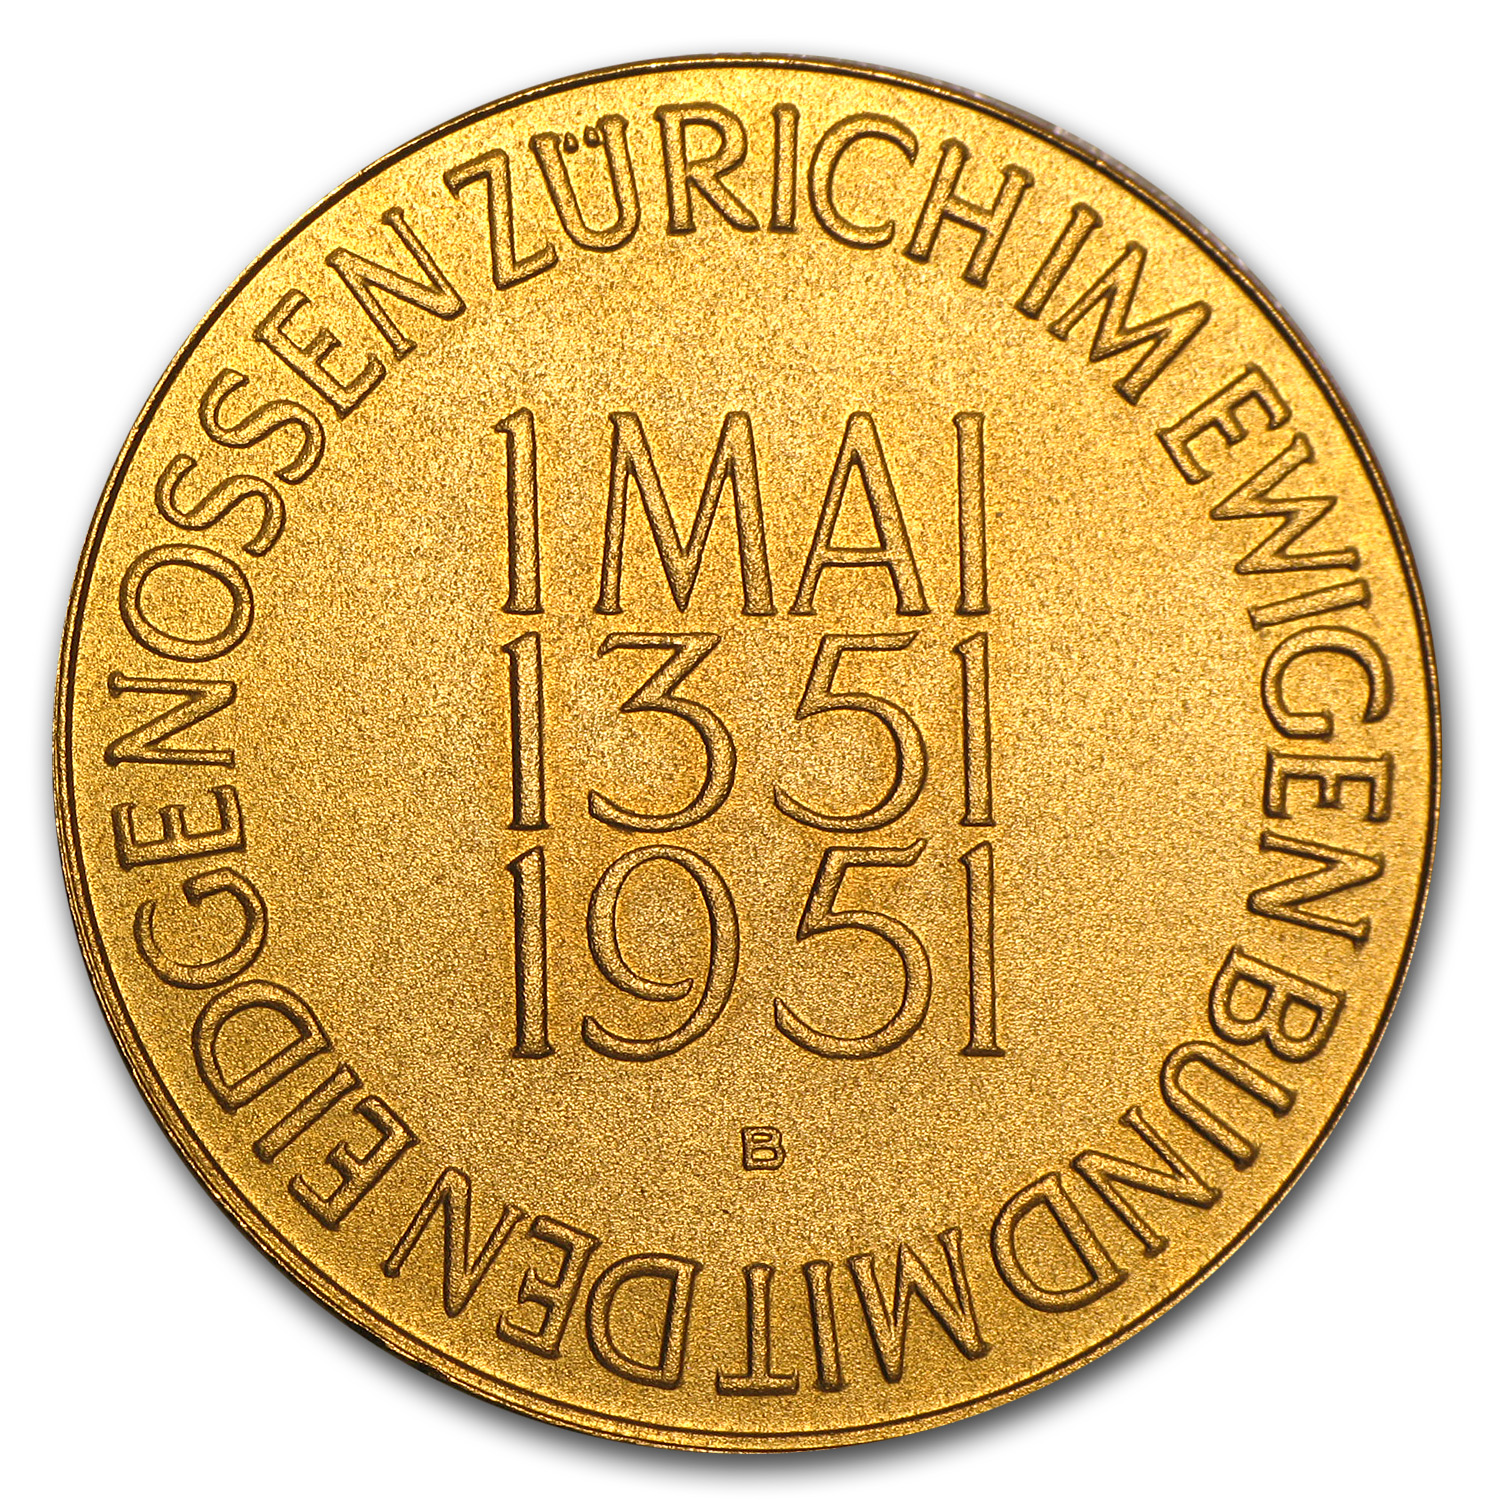 Switzerland 1951 Gold Medal (Zurich) AGW 0.793